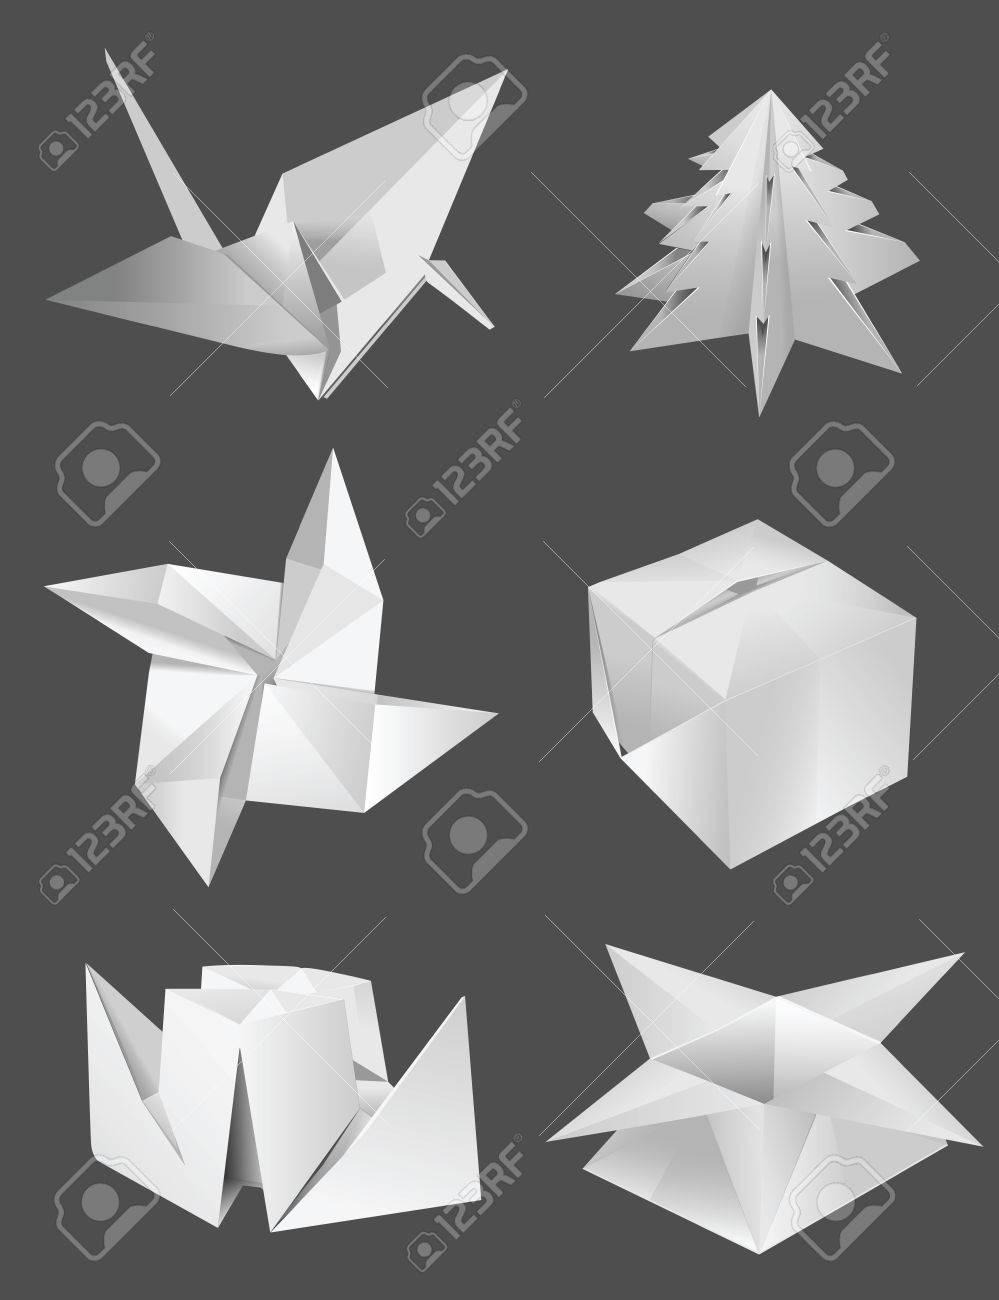 Origami bird box tree ship flower royalty free cliparts vectors origami bird box tree ship flower stock vector 23350407 mightylinksfo Choice Image